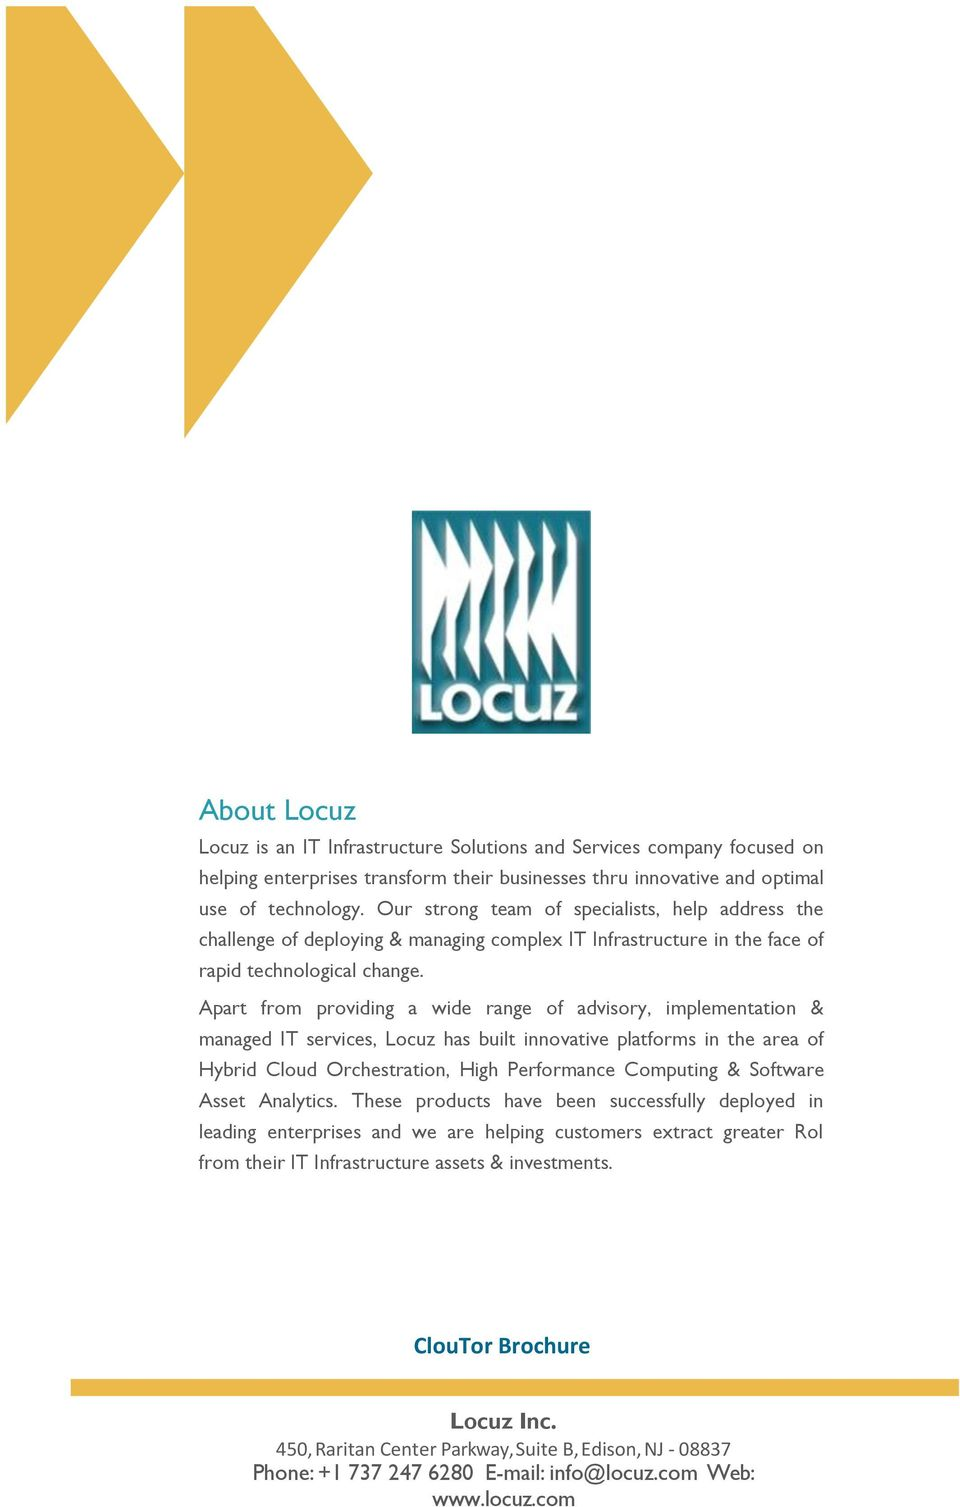 Apart from providing a wide range of advisory, implementation & managed IT services, Locuz has built innovative platforms in the area of Hybrid Cloud Orchestration, High Performance Computing &